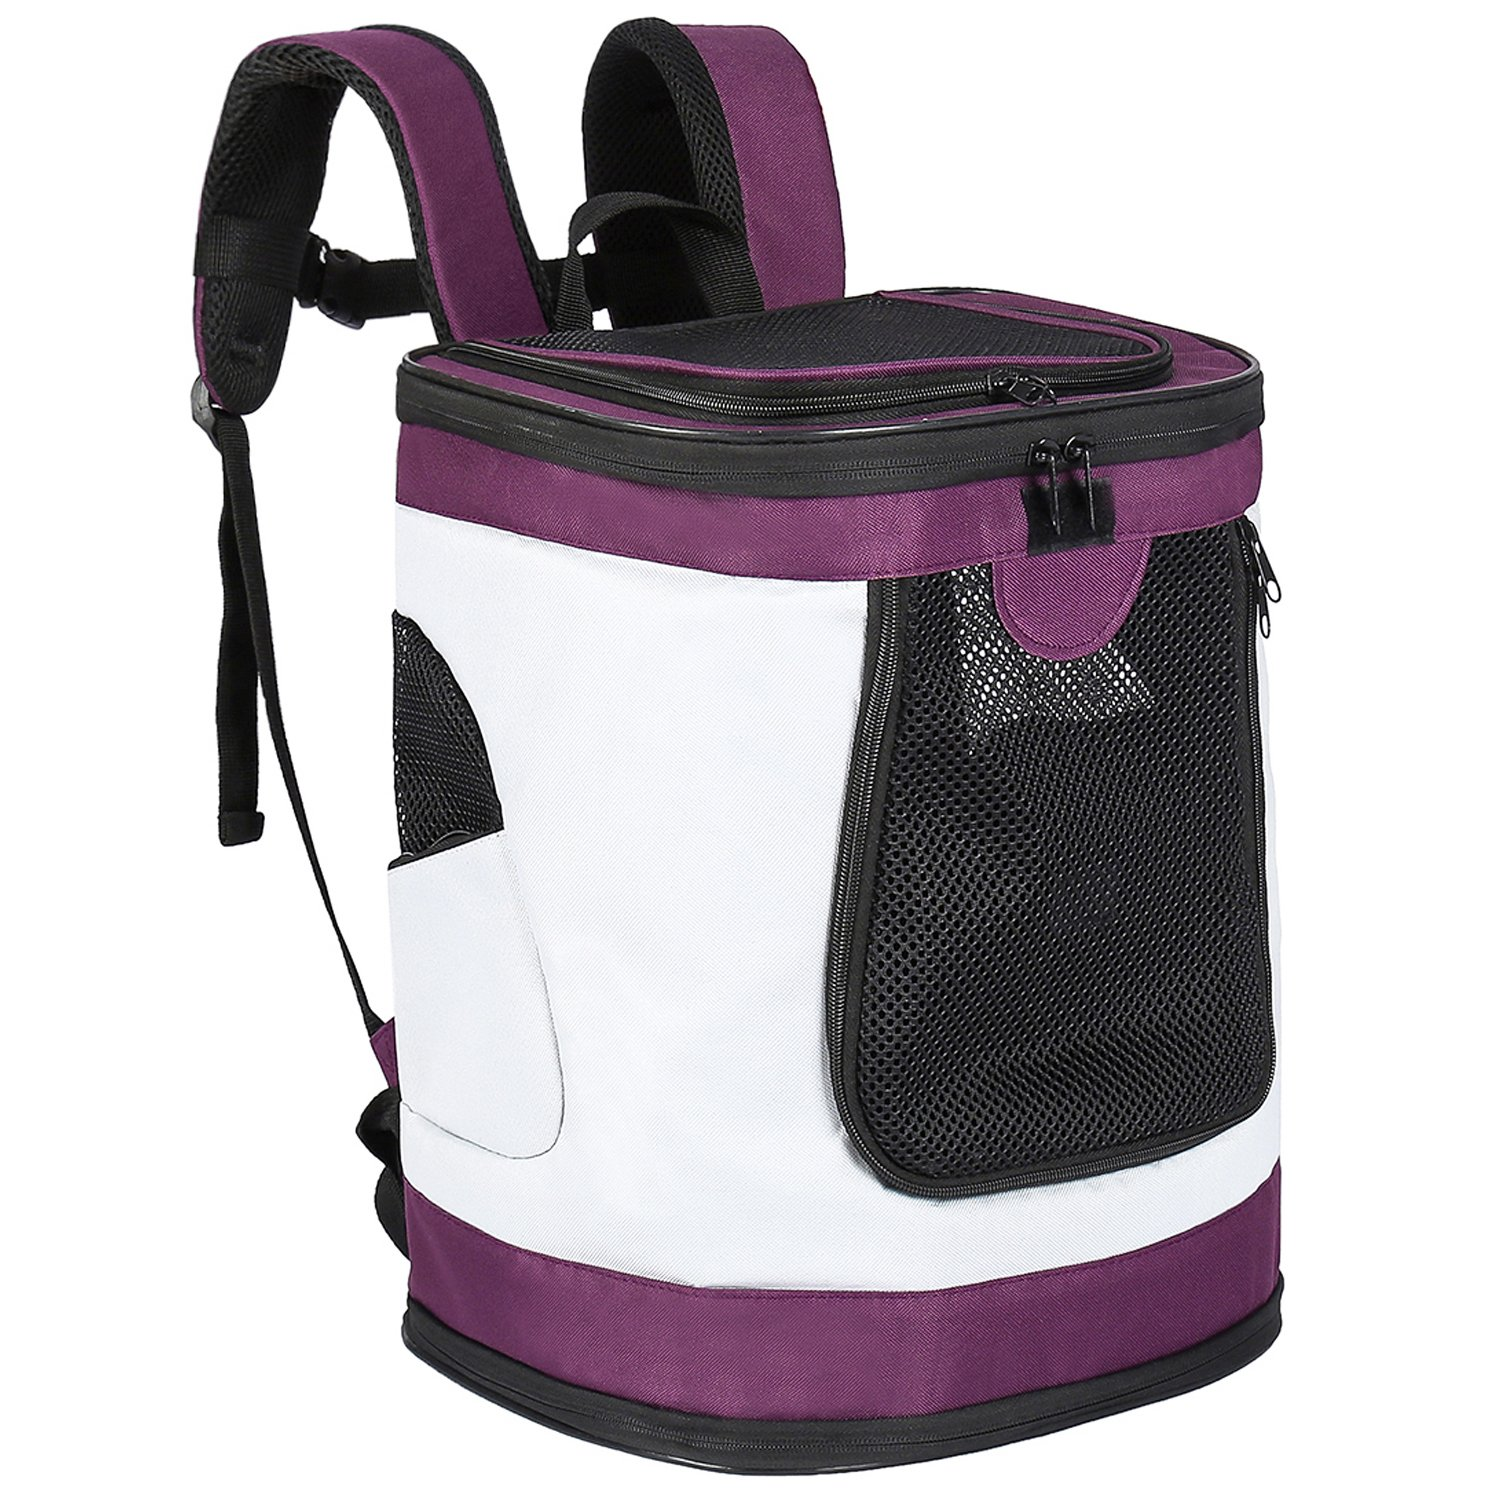 None Pet Carrier Backpack for Small Medium Dogs Cats, Airline Approved Bag with Mesh Windows for Travel, Hiking, Outdoor up to 20LBS Purple